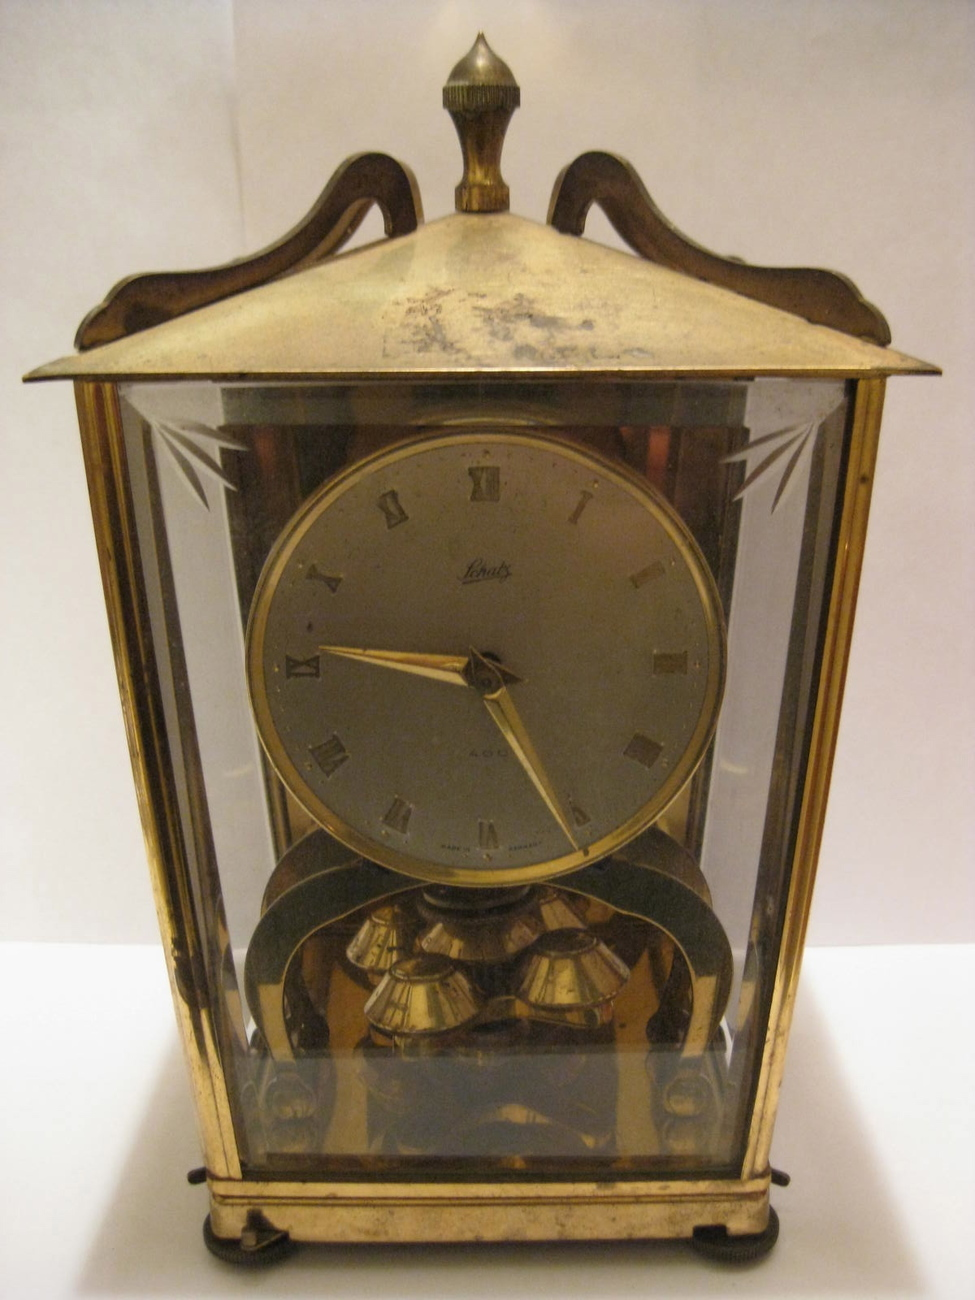 Primary image for Clock - SCHATZ 400 - Vintage 1950s Table Clock